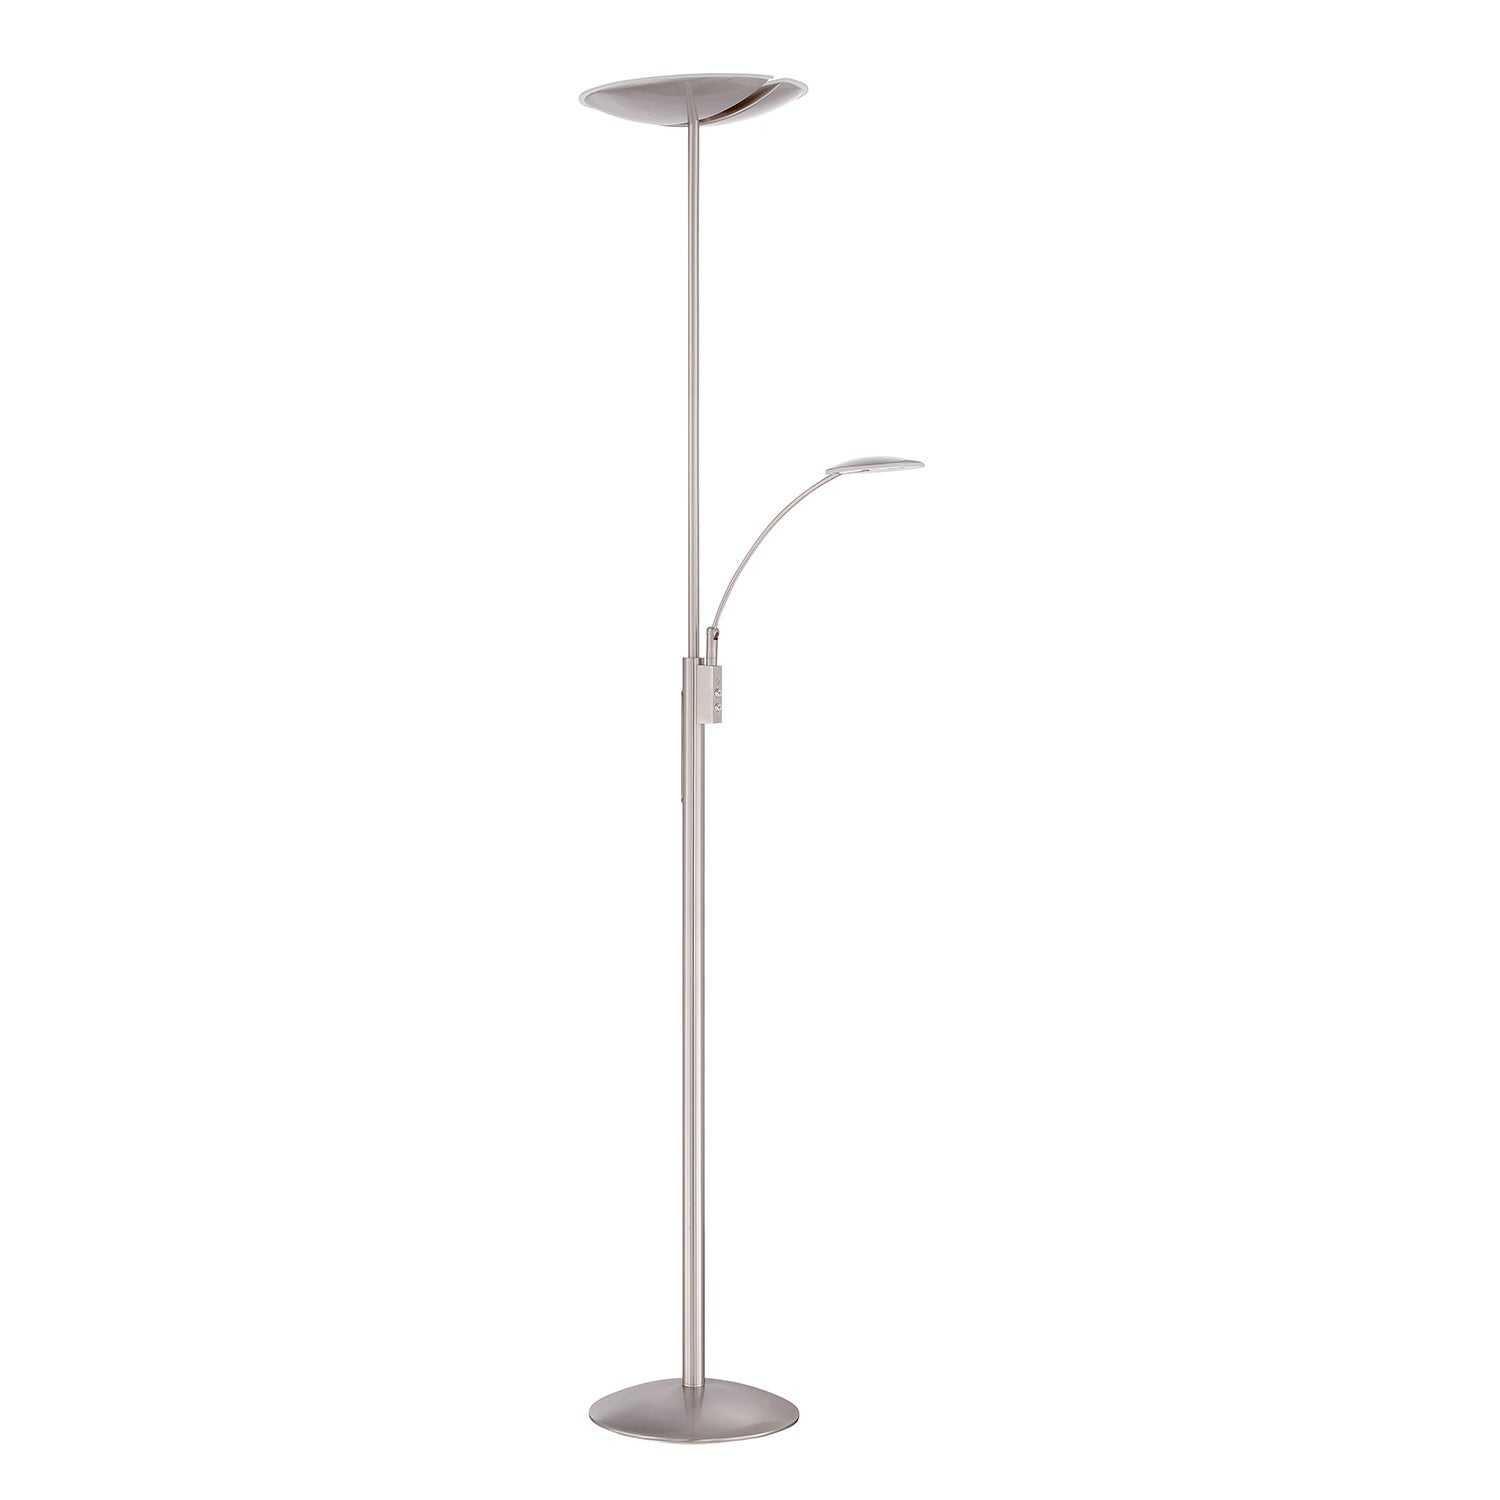 Shop Splitz Series Satin Nickel 72 Inch Led Torchiere Floor Lamp